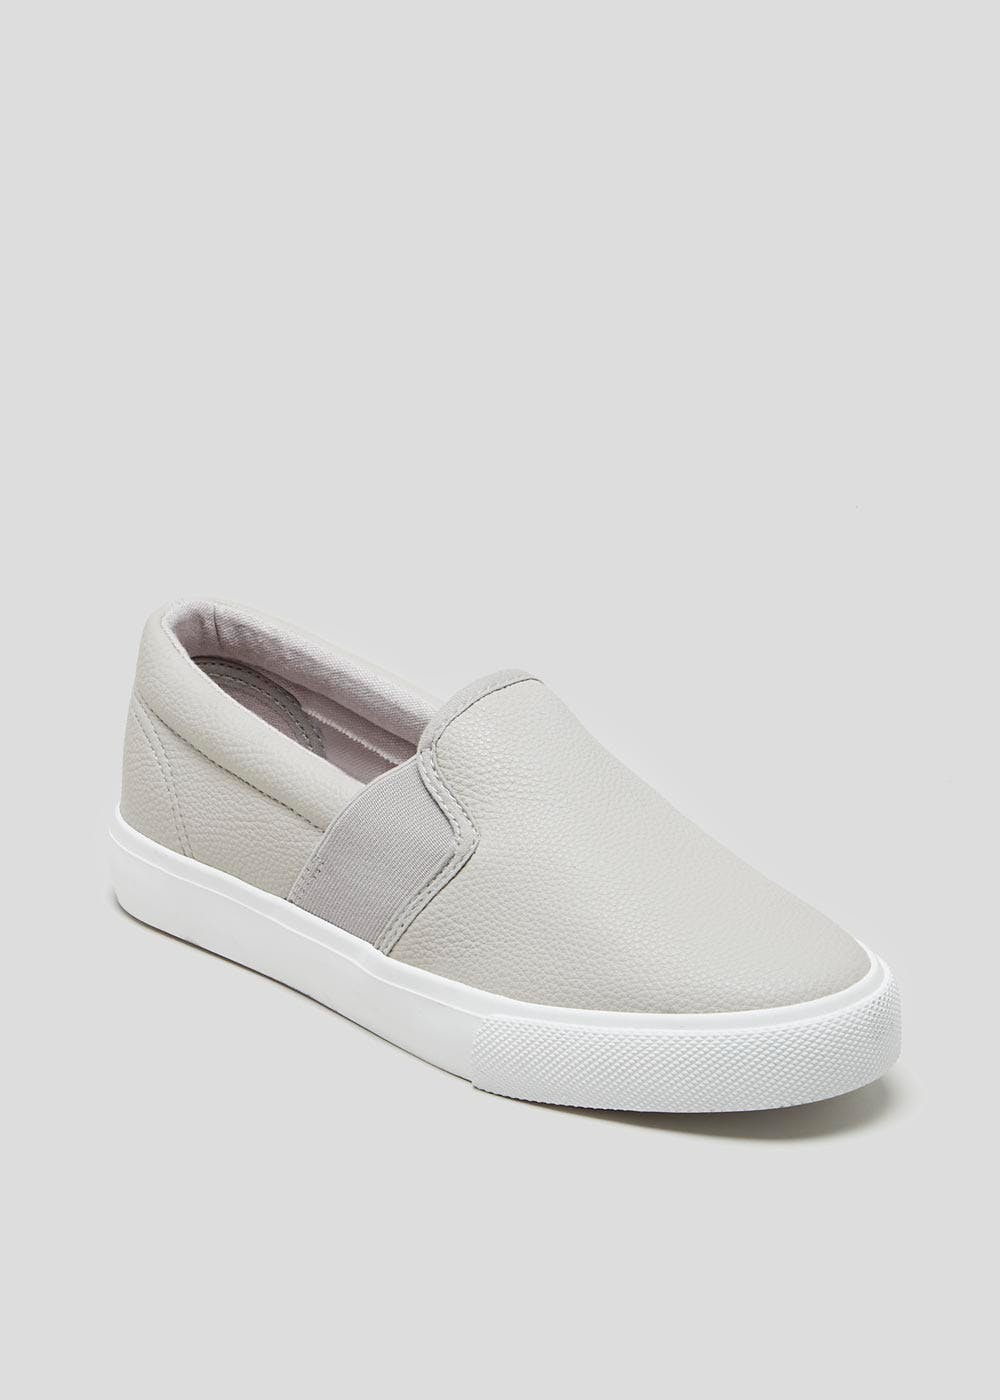 11c9e01a61d Slip On Canvas Pumps – Grey – Matalan